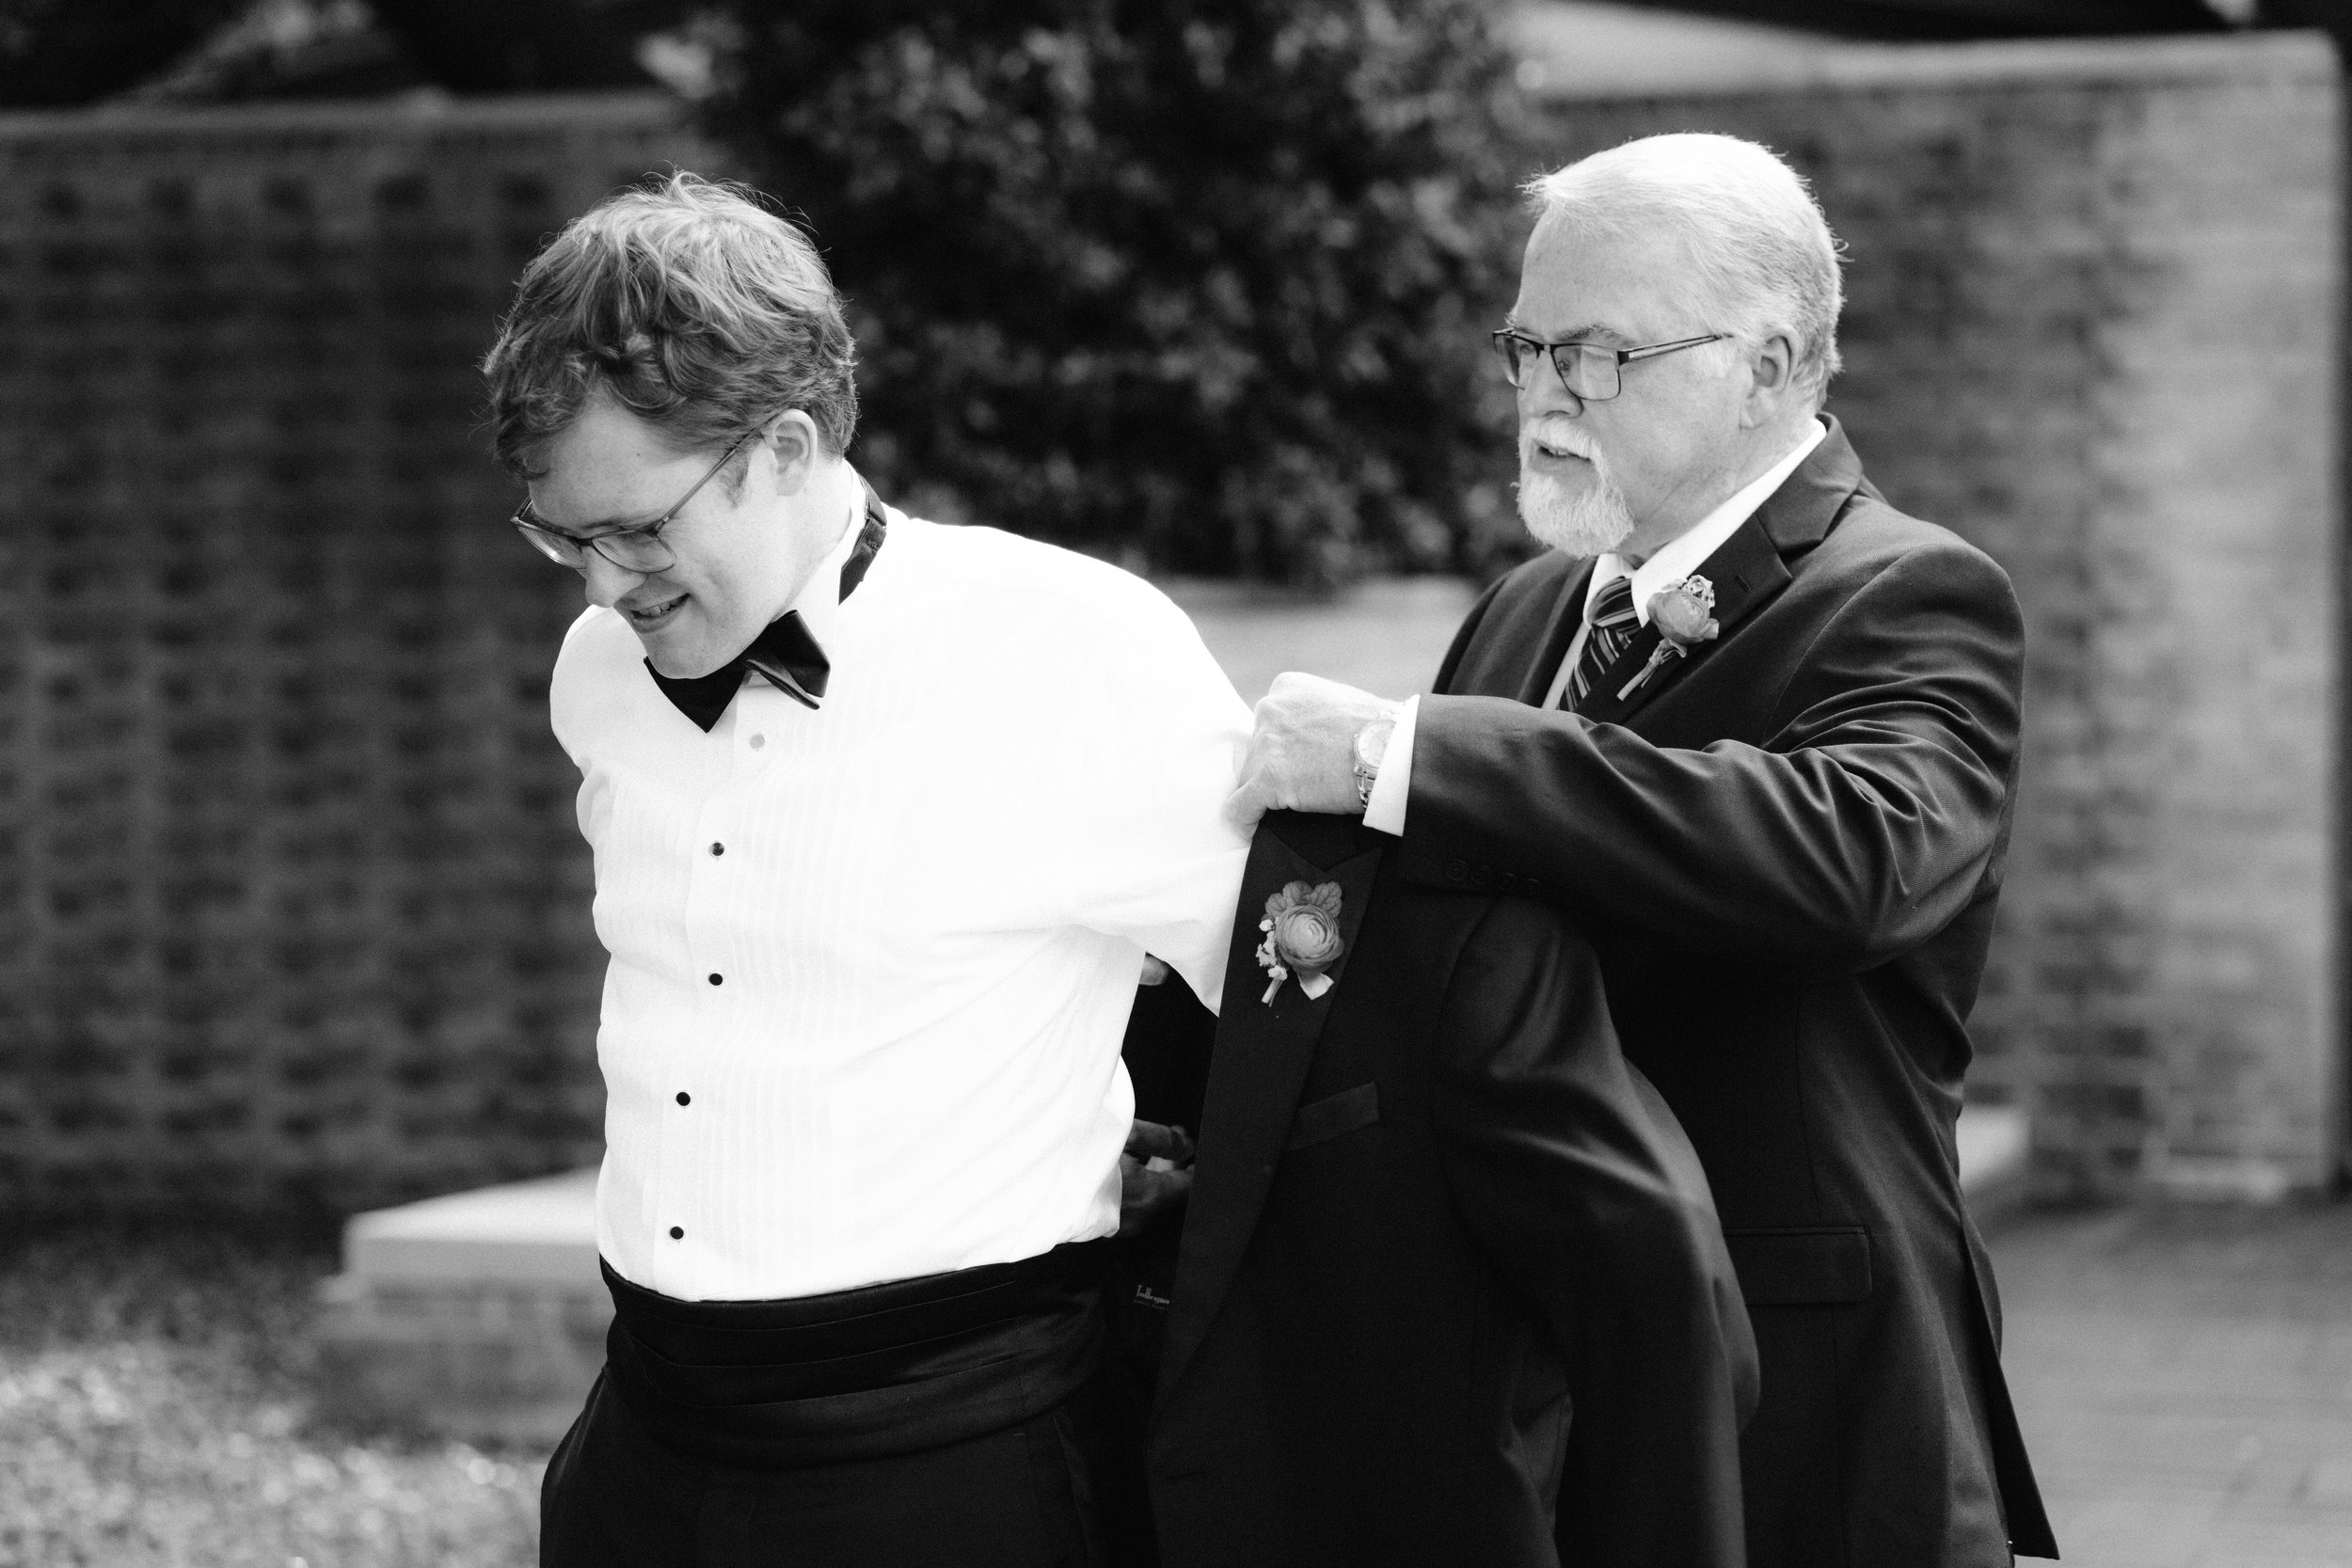 Nick-and-Father-The-Dallas-Arboretum-Ivory-and-Vine.jpg